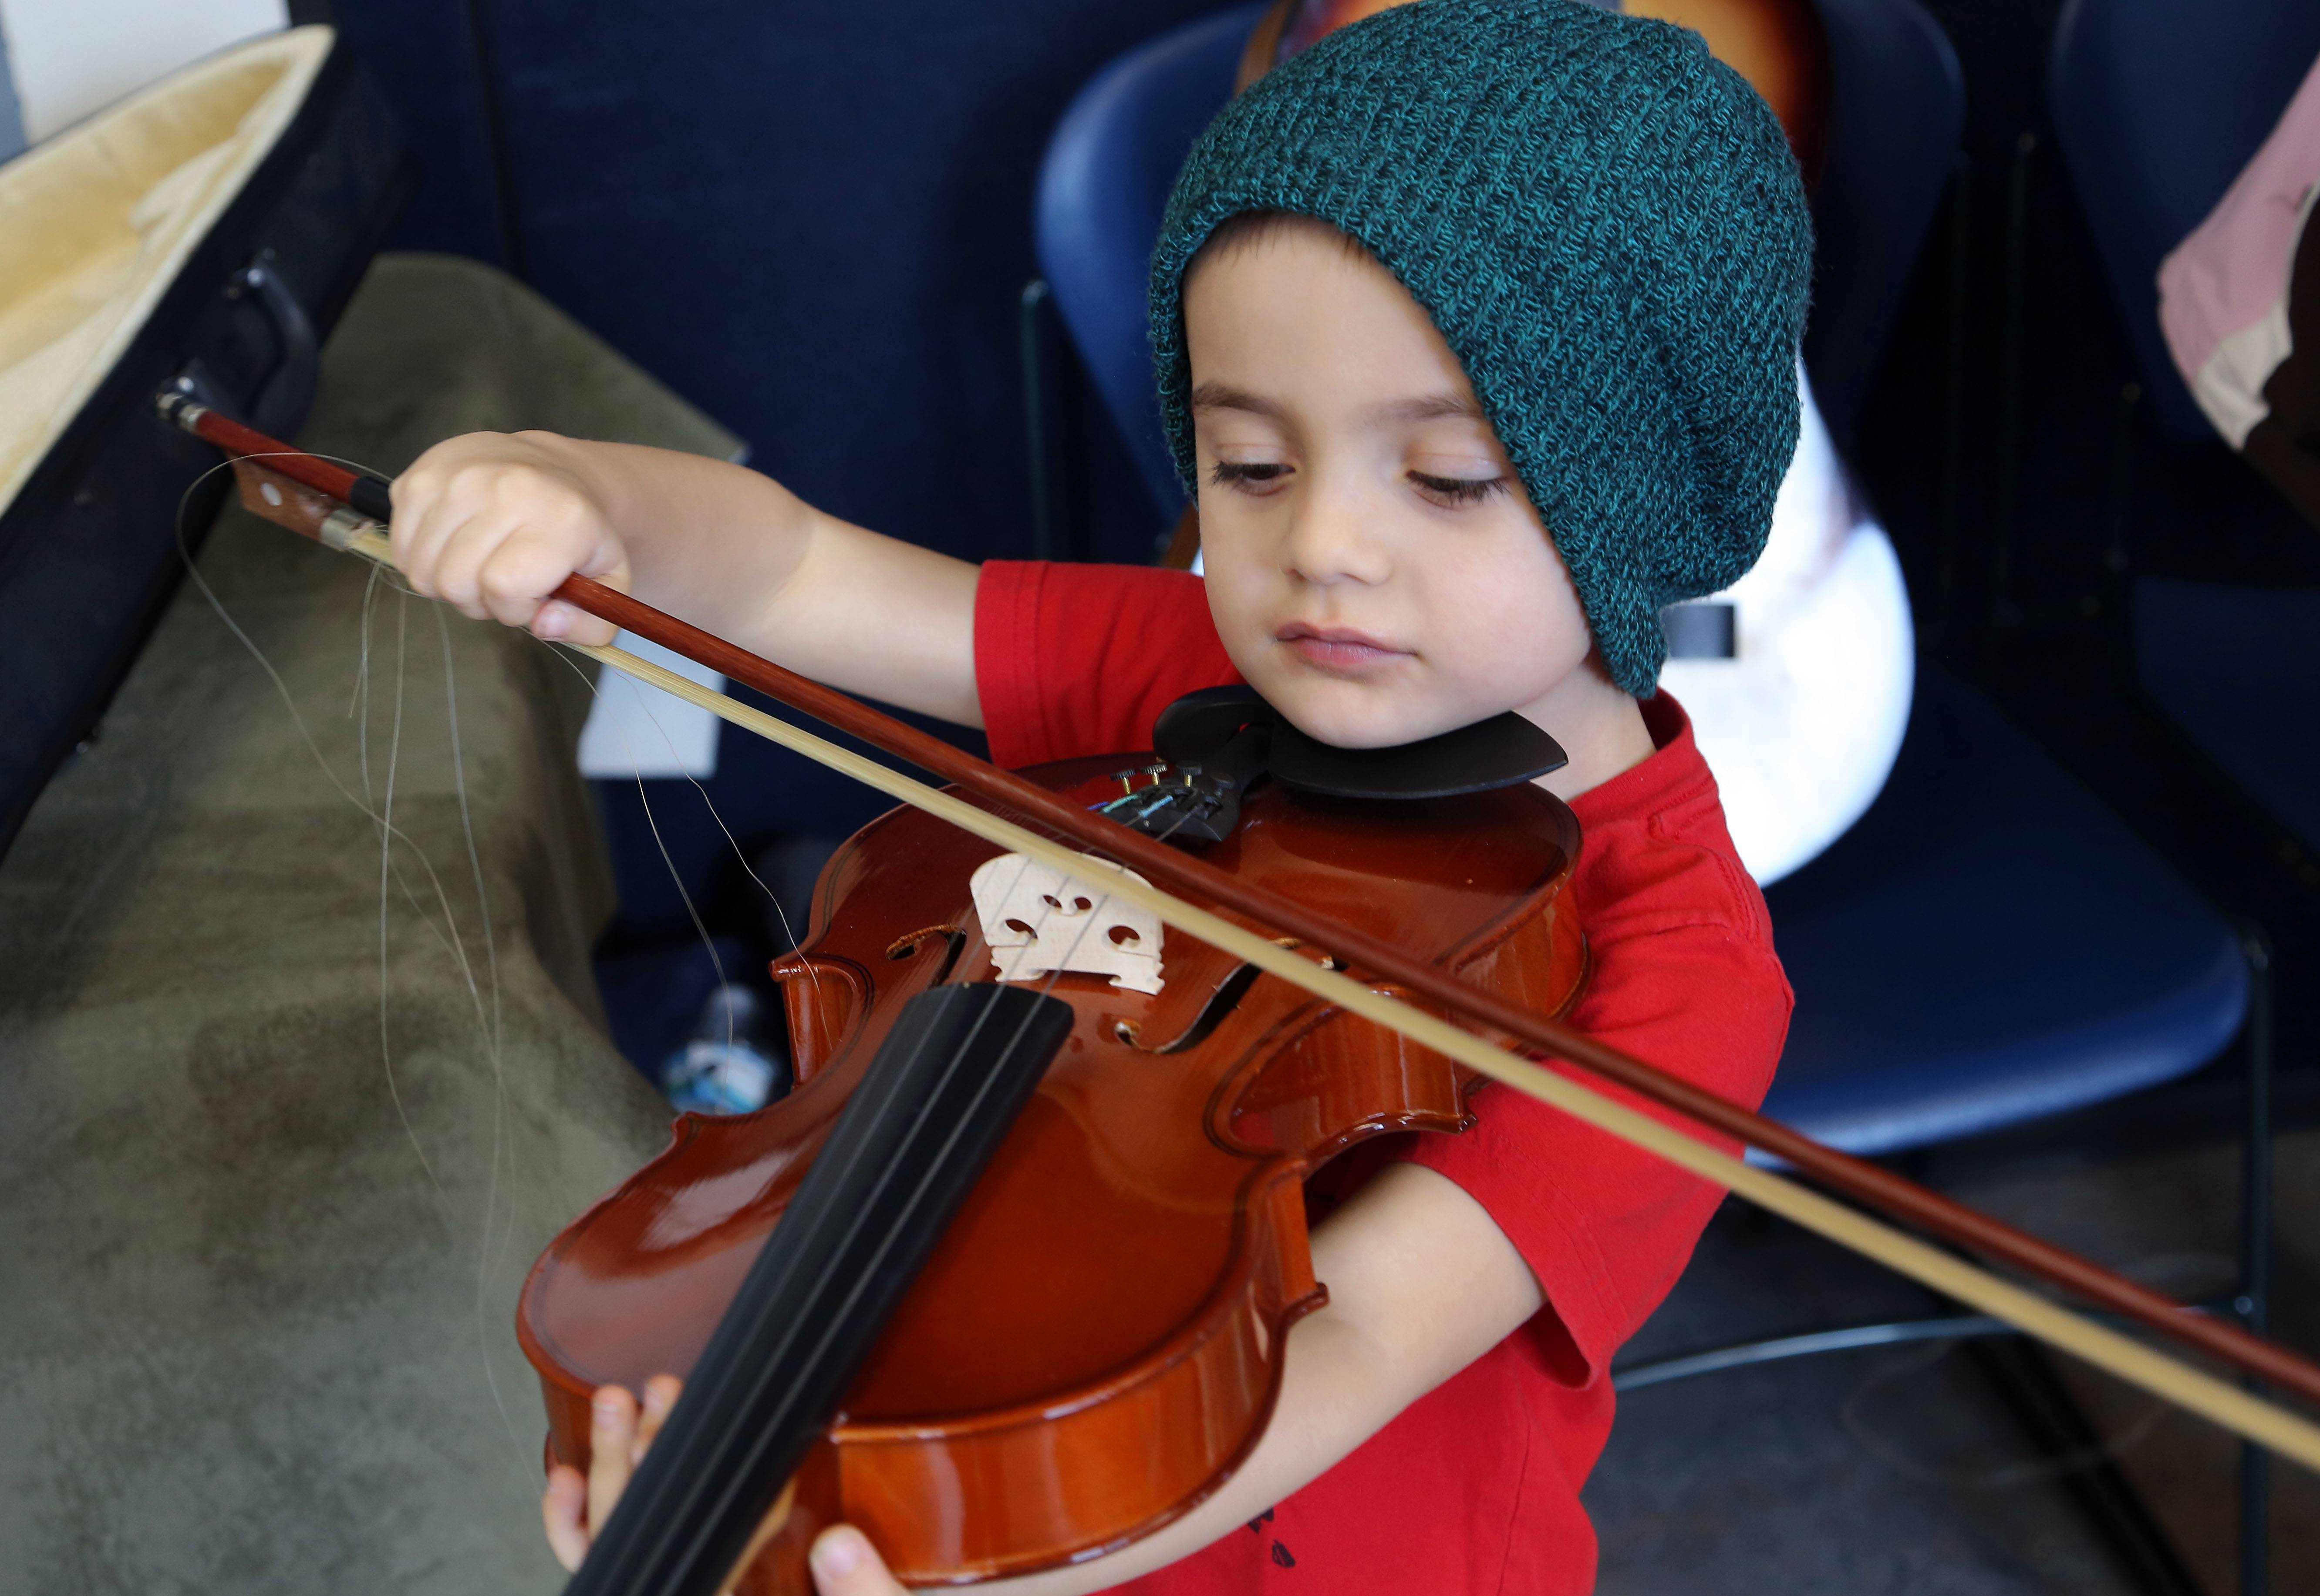 Cooper Laib, 4, of Round Lake Beach tries out a violin Thursday during music instructor Susan Nierman's Instrument Zoo program at Grayslake Public Library.